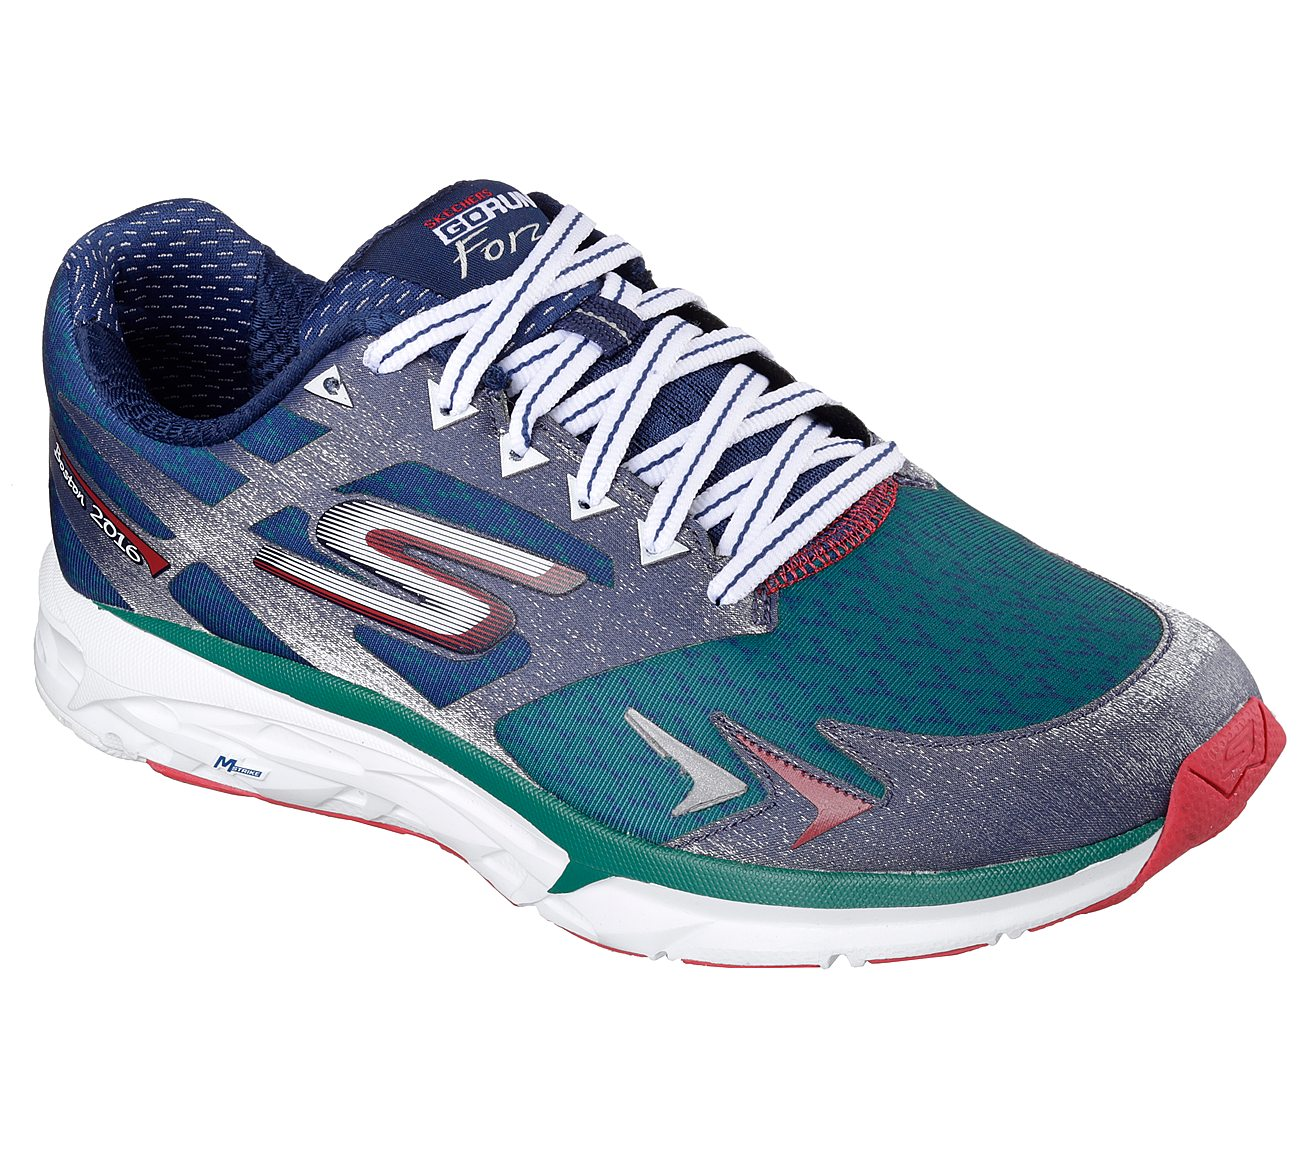 a69732eee81c Buy SKECHERS Skechers GOrun Forza - Boston 2016 Skechers Performance ...